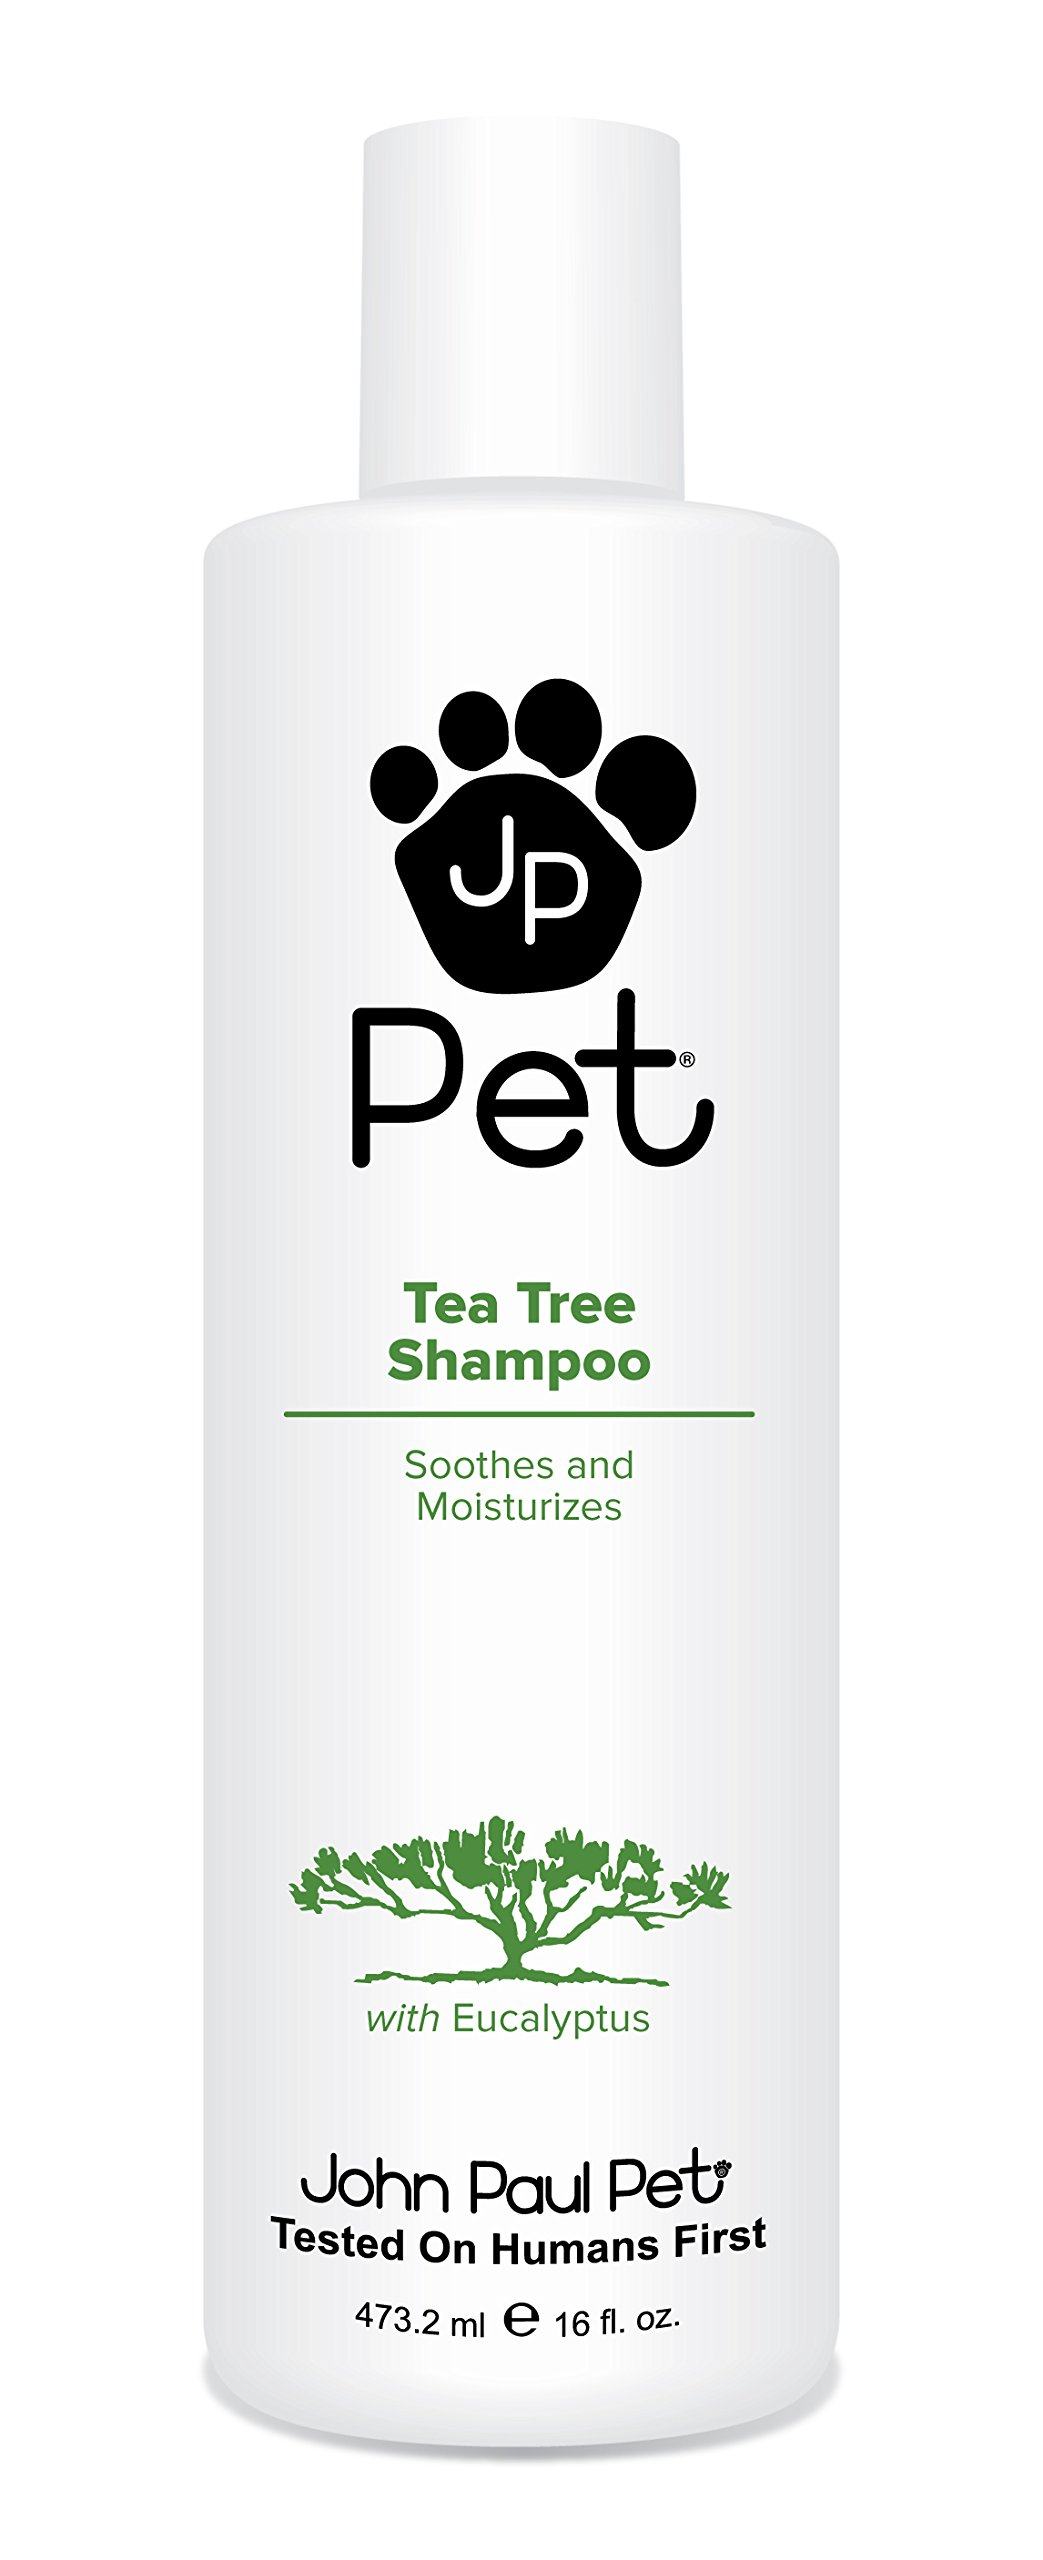 John Paul Pet Australian Tea Tree and Eucalyptus Oil Shampoo for Dogs and Cats, Cleanses Moisturizes and Soothes Skin Irritations, 16-Ounce